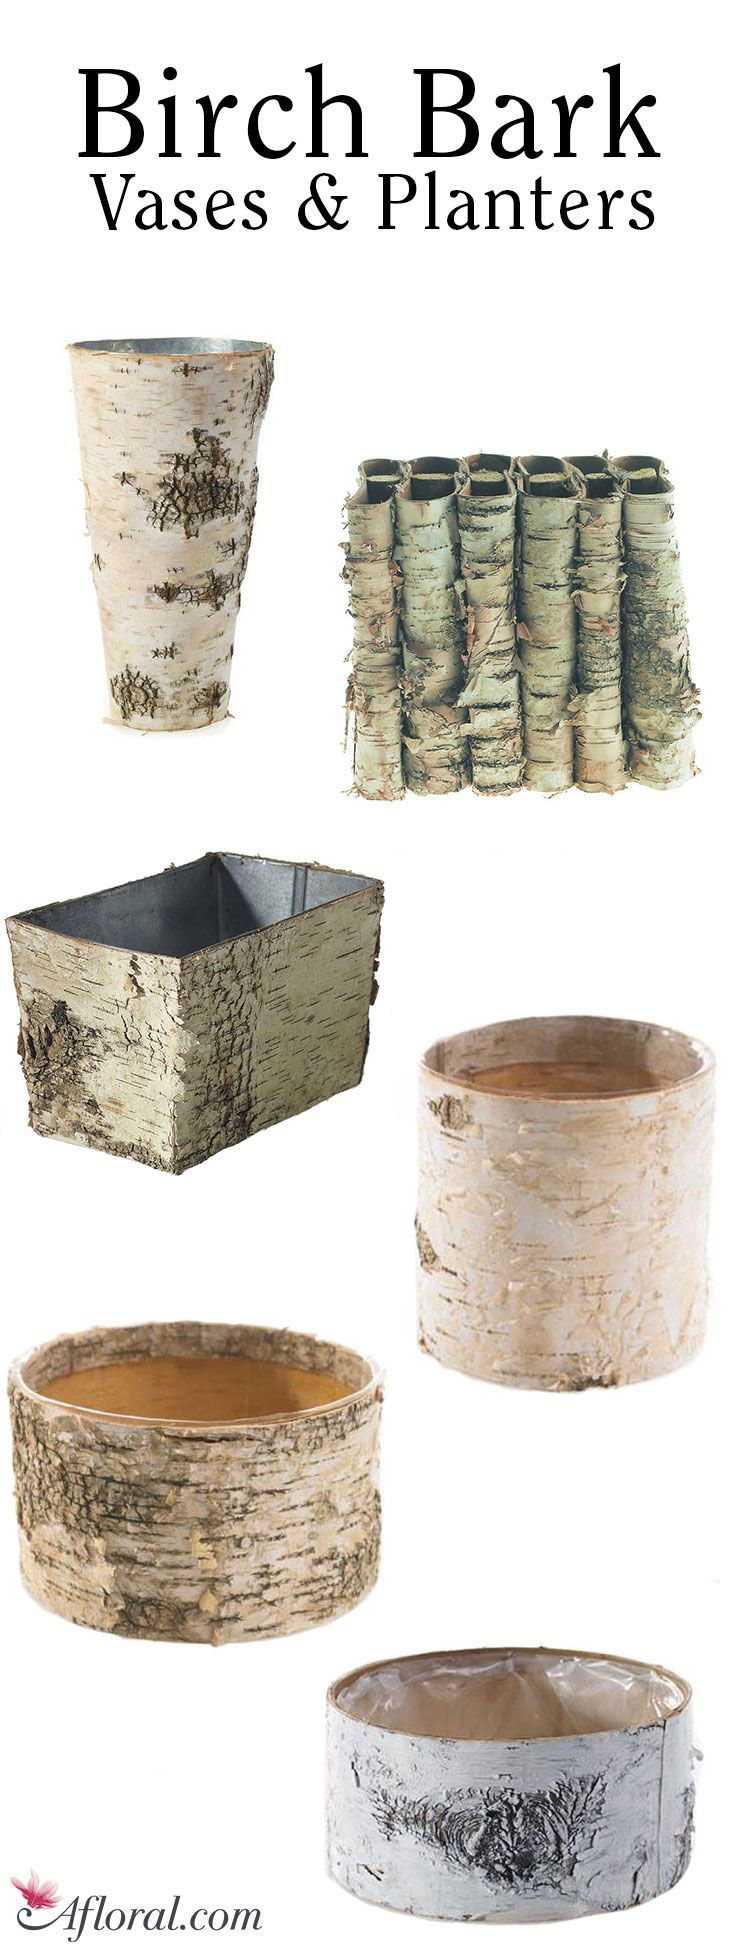 319 best rustic wedding flowers decor images on pinterest birch bark vases and planter perfect for rustic themed decor reviewsmspy